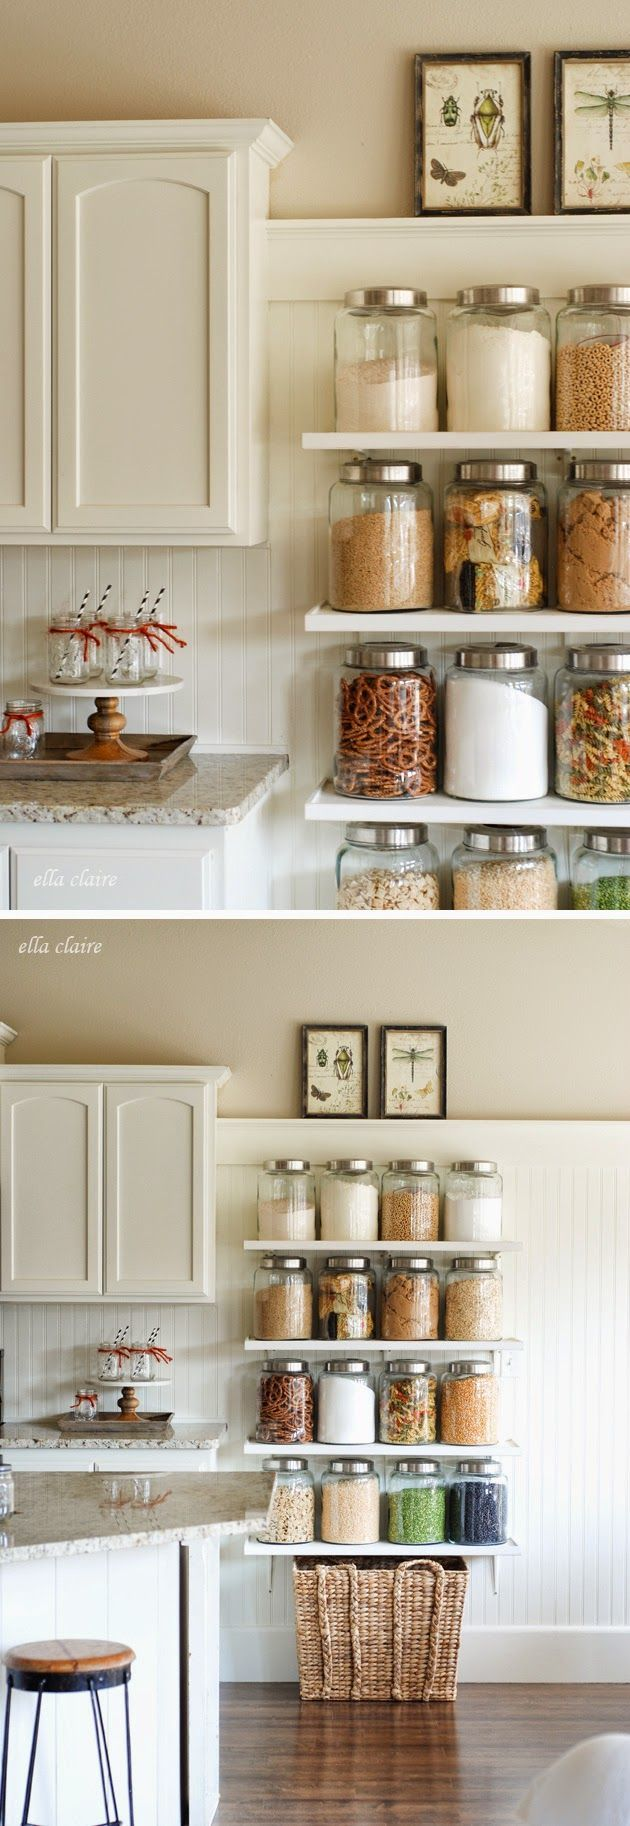 Diy kitchen essentials for all homes 10 diy do it yourself easy and smart diy kitchen ideas in bugget 4 diy crafts you home design diy country store kitchen shelves creating pantry space in the kitchen by solutioingenieria Gallery